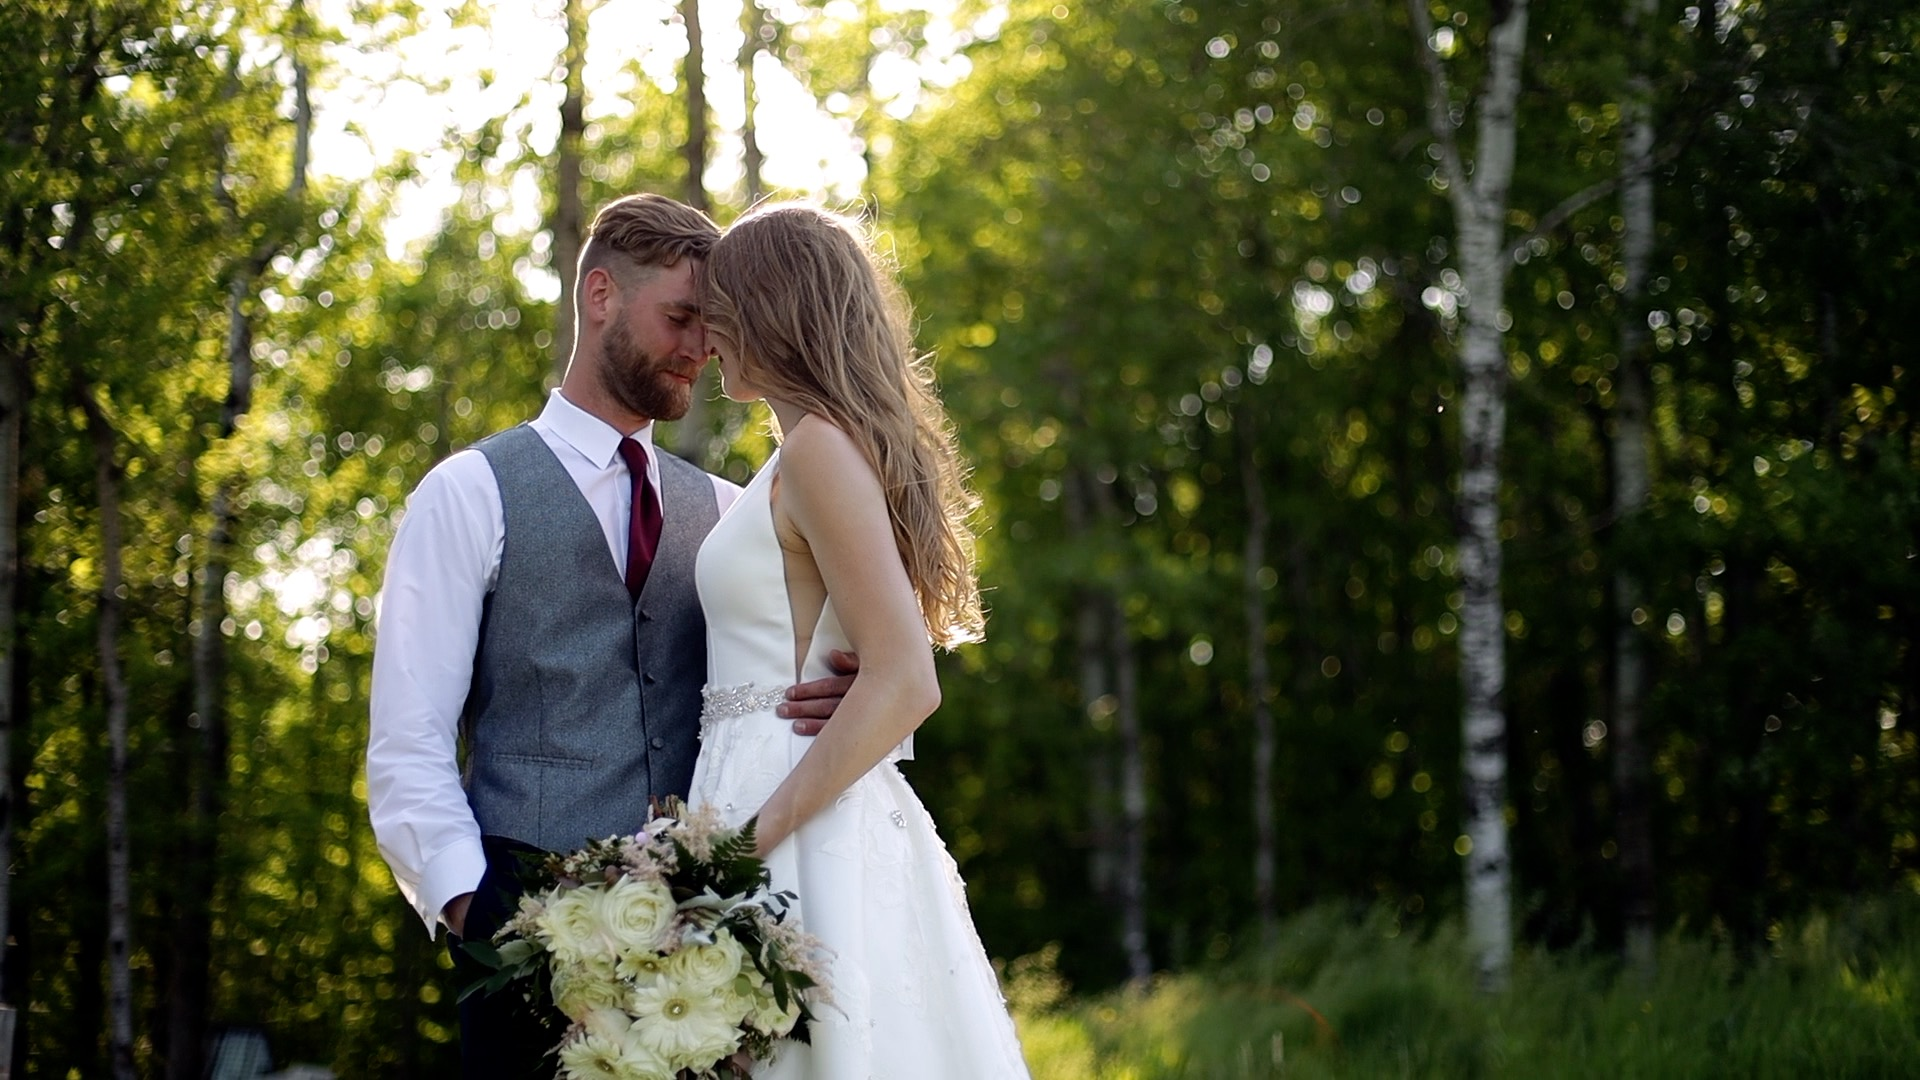 Travis + Emily | Boy River, Minnesota | Little Lazy Lodge